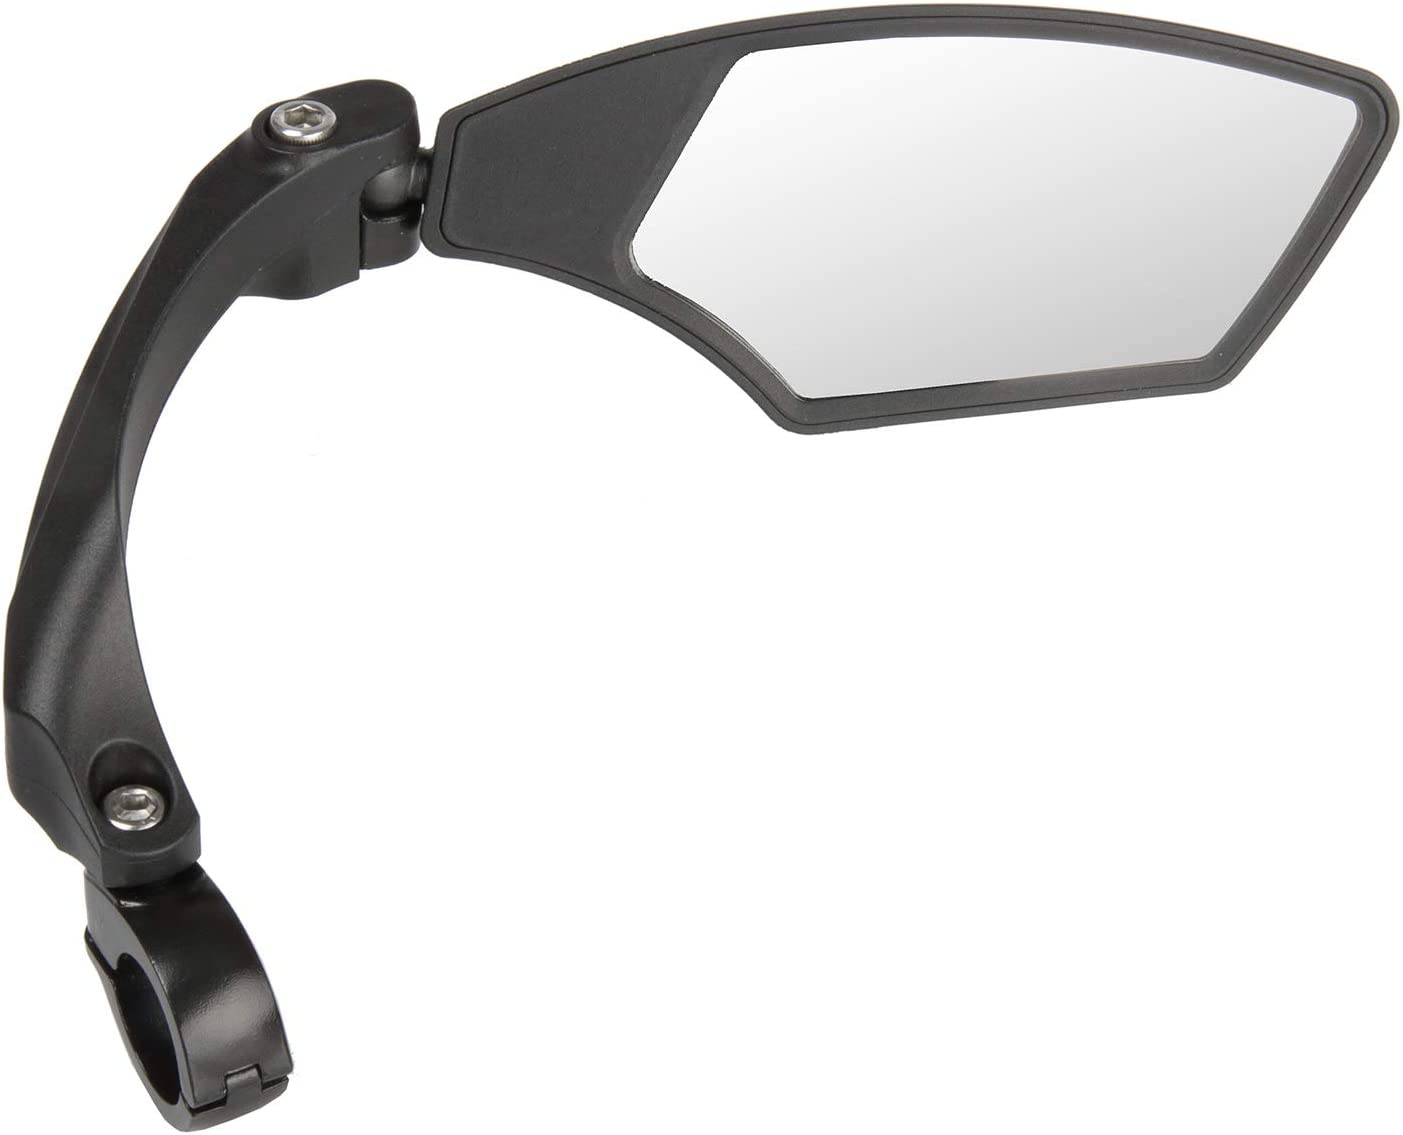 M-Wave Unisexs Spy Space Bicycle Mirror